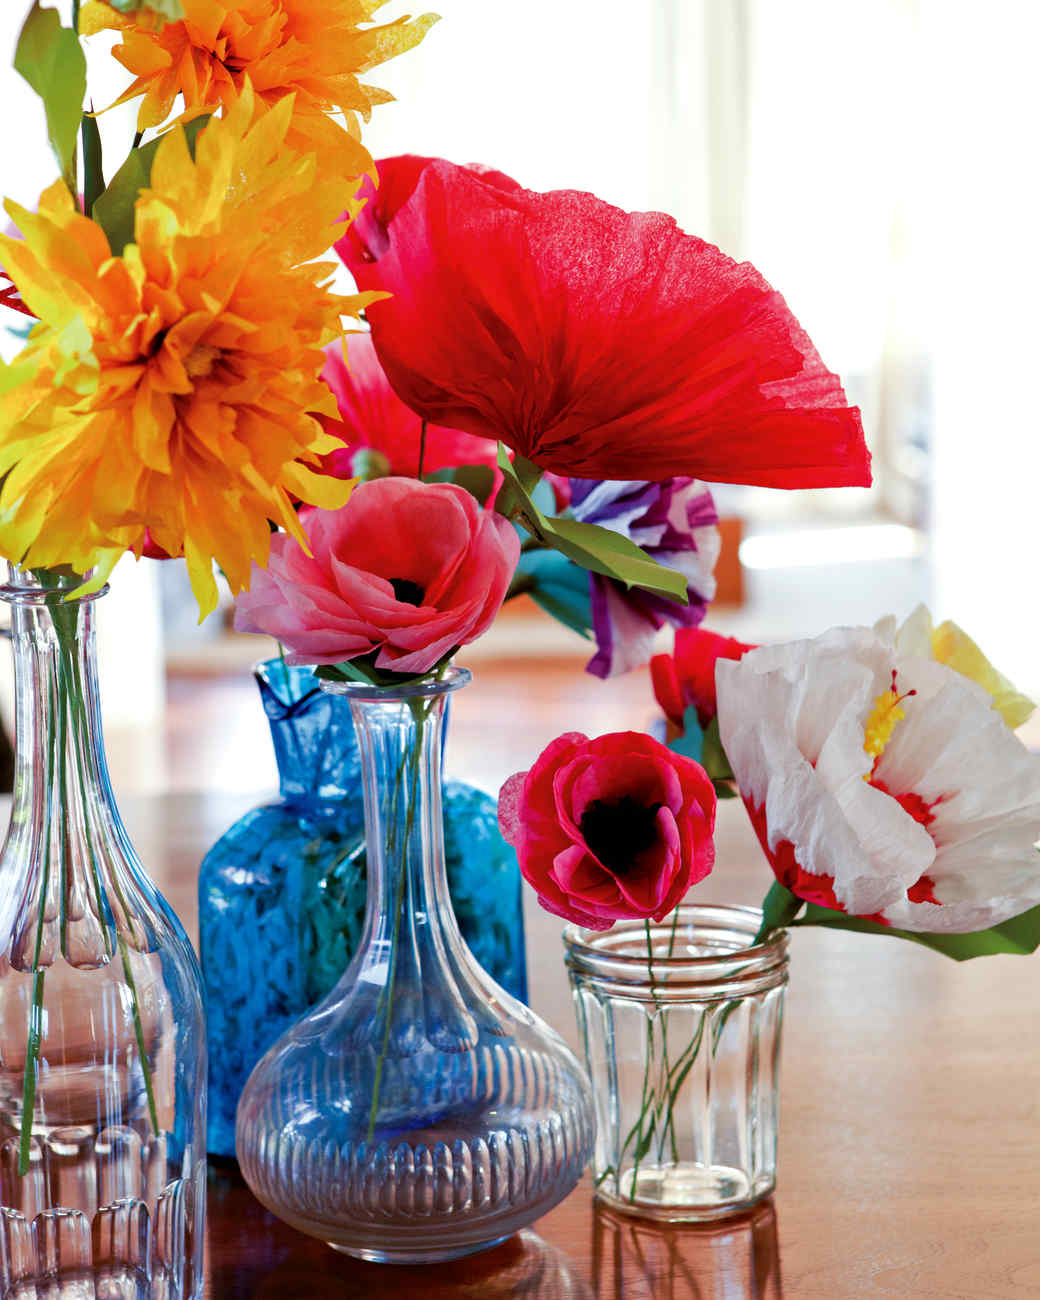 How to Make Crepe-Paper Flowers | Martha Stewart